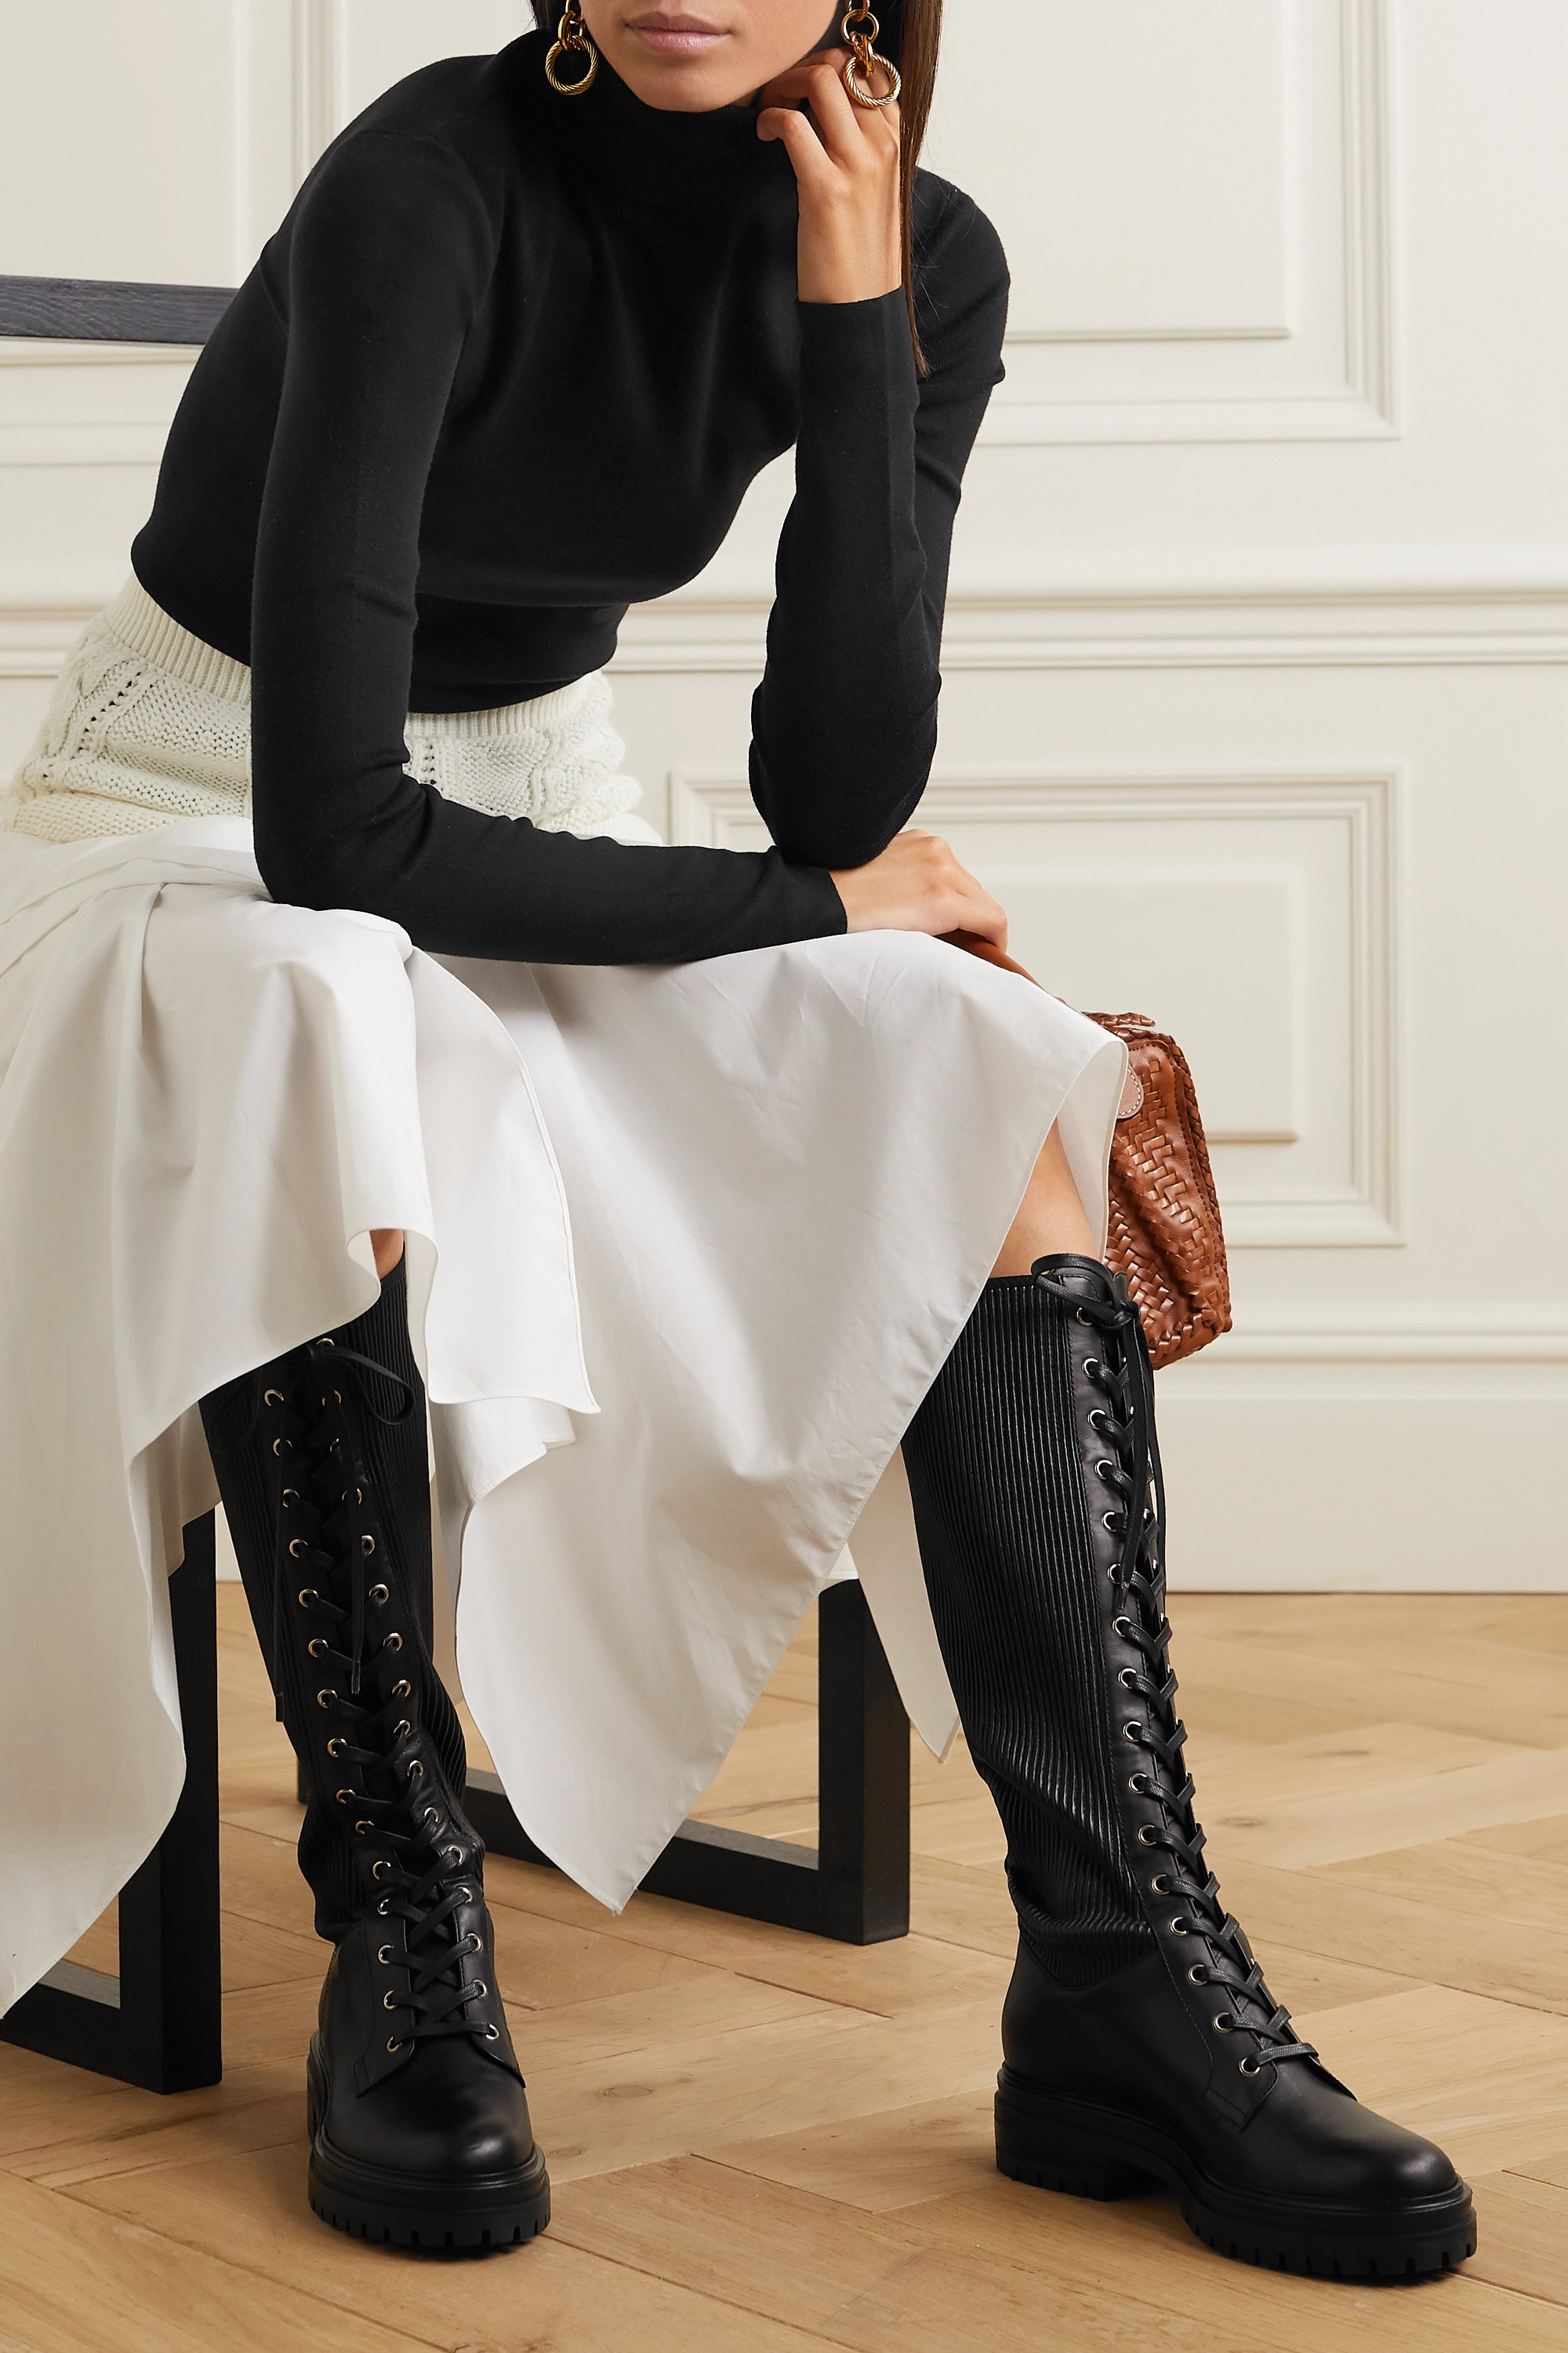 Black Lace-up leather knee boots